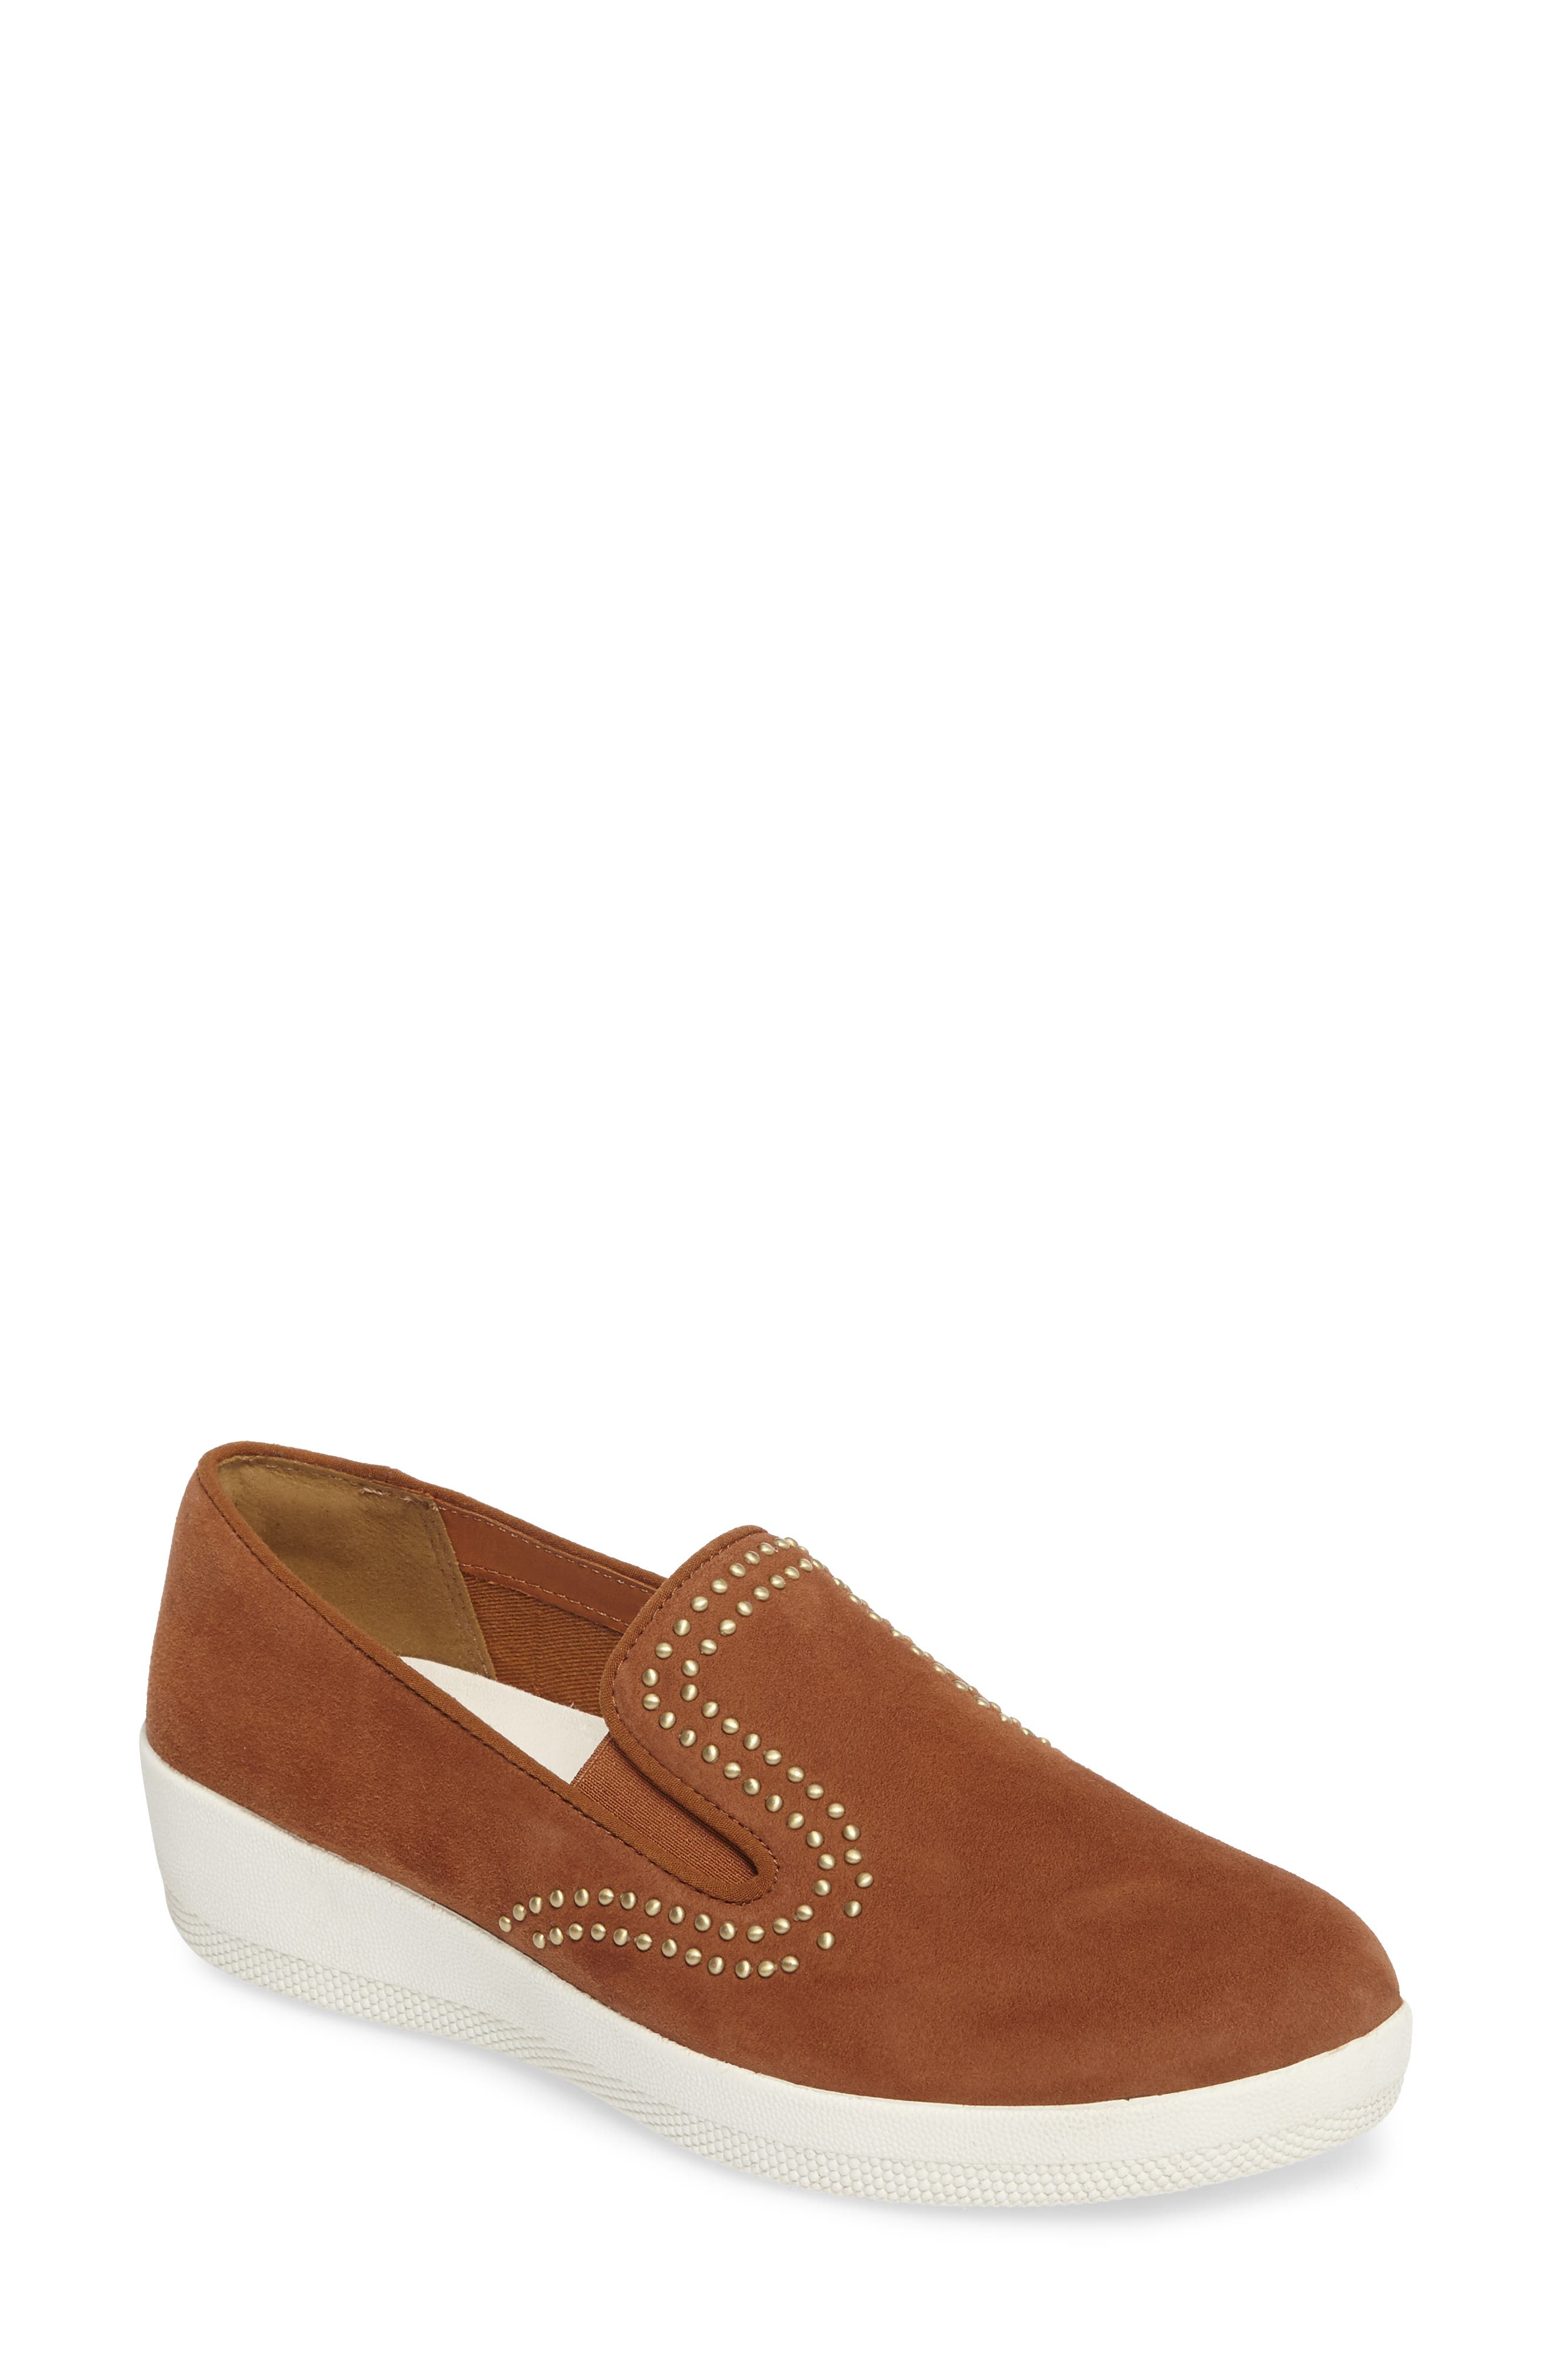 Superskate Studded Wedge Loafer,                             Main thumbnail 1, color,                             Tan Faux Suede